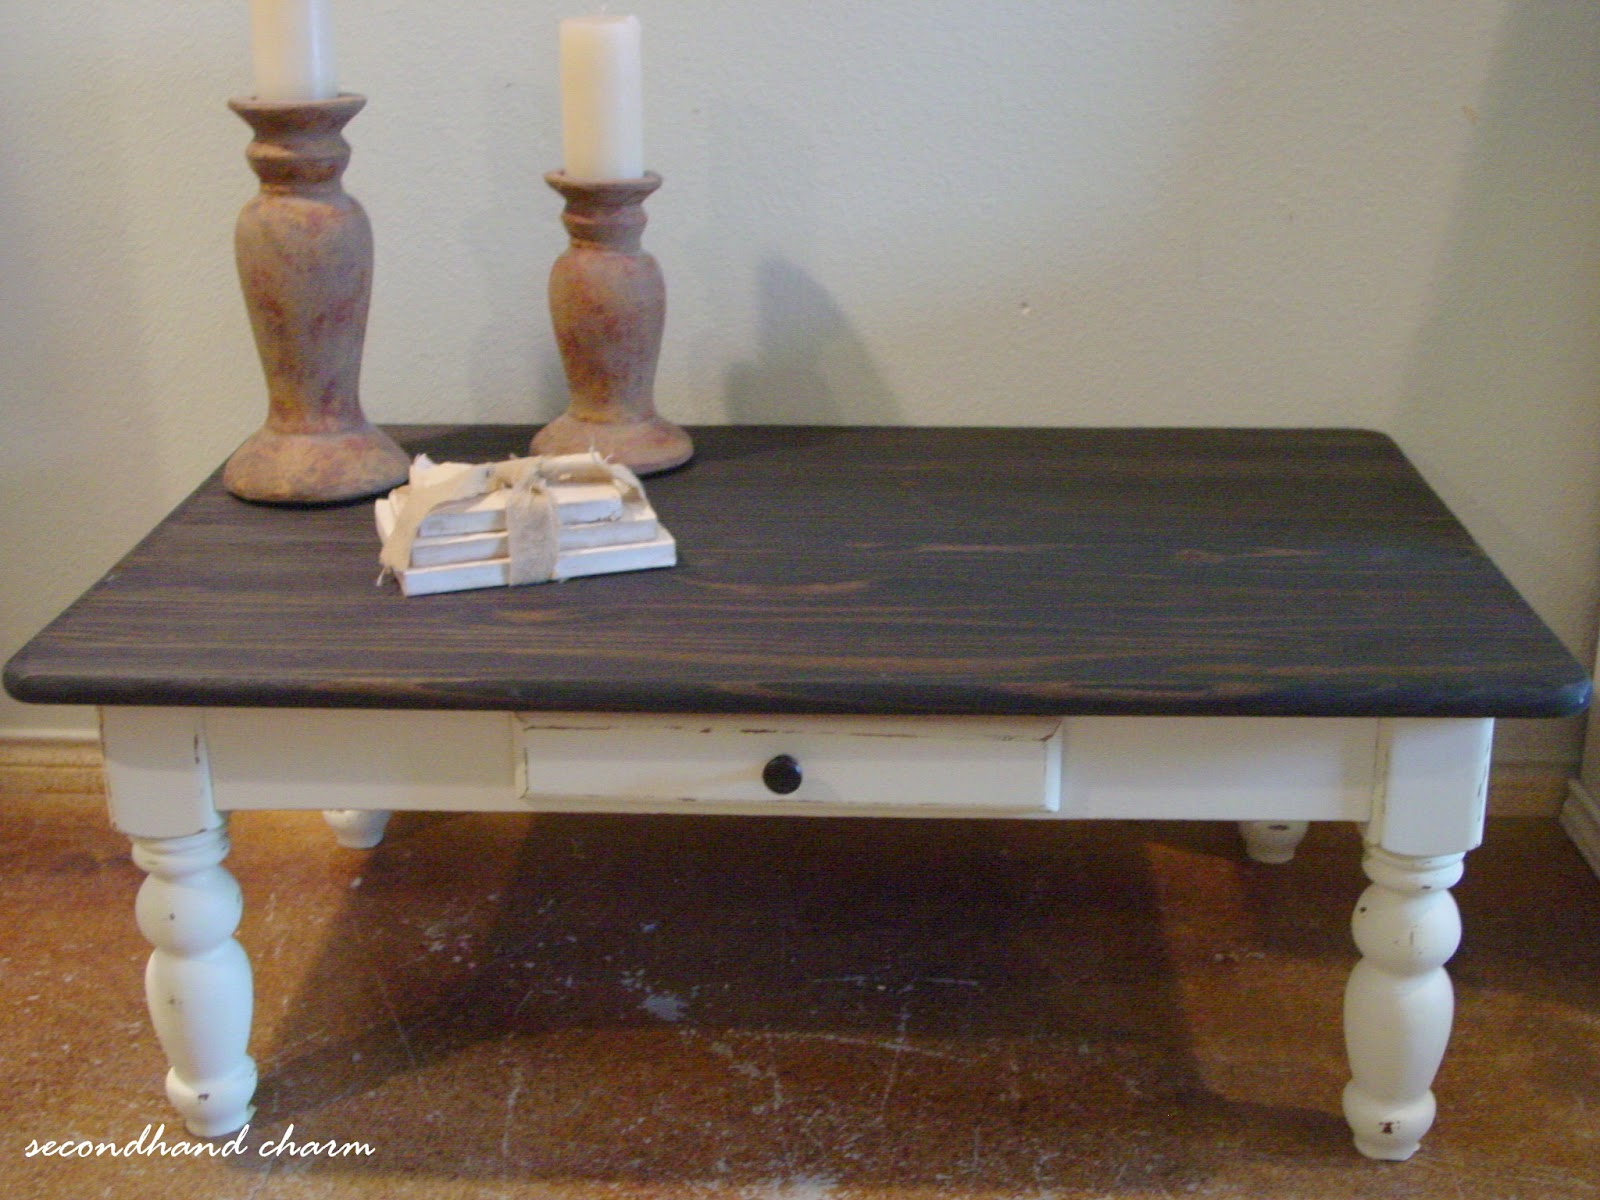 Secondhand Charm Beautiful Wood Coffee Table 150 Sold